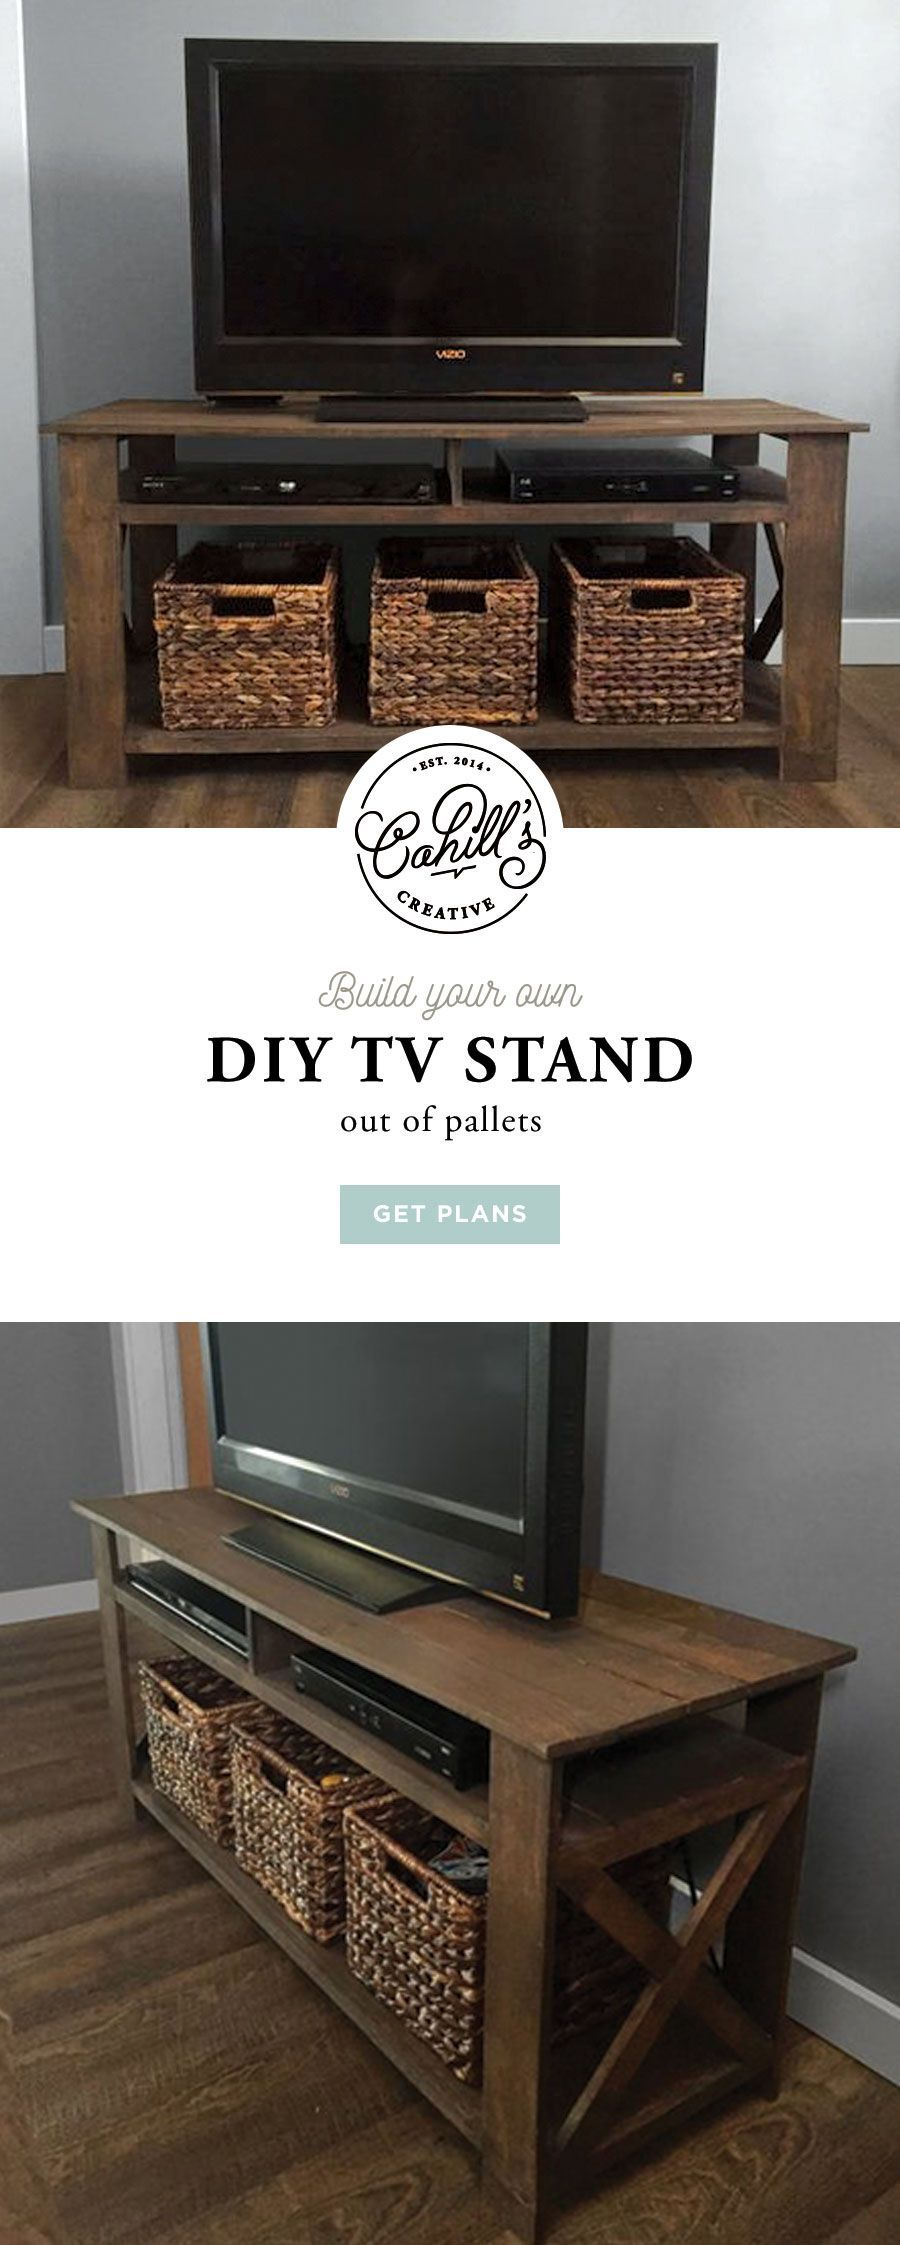 50+ Creative Diy Tv Stand Ideas For Your Room Interior | Diy Throughout Marvin Rustic Natural 60 Inch Tv Stands (Photo 10 of 30)